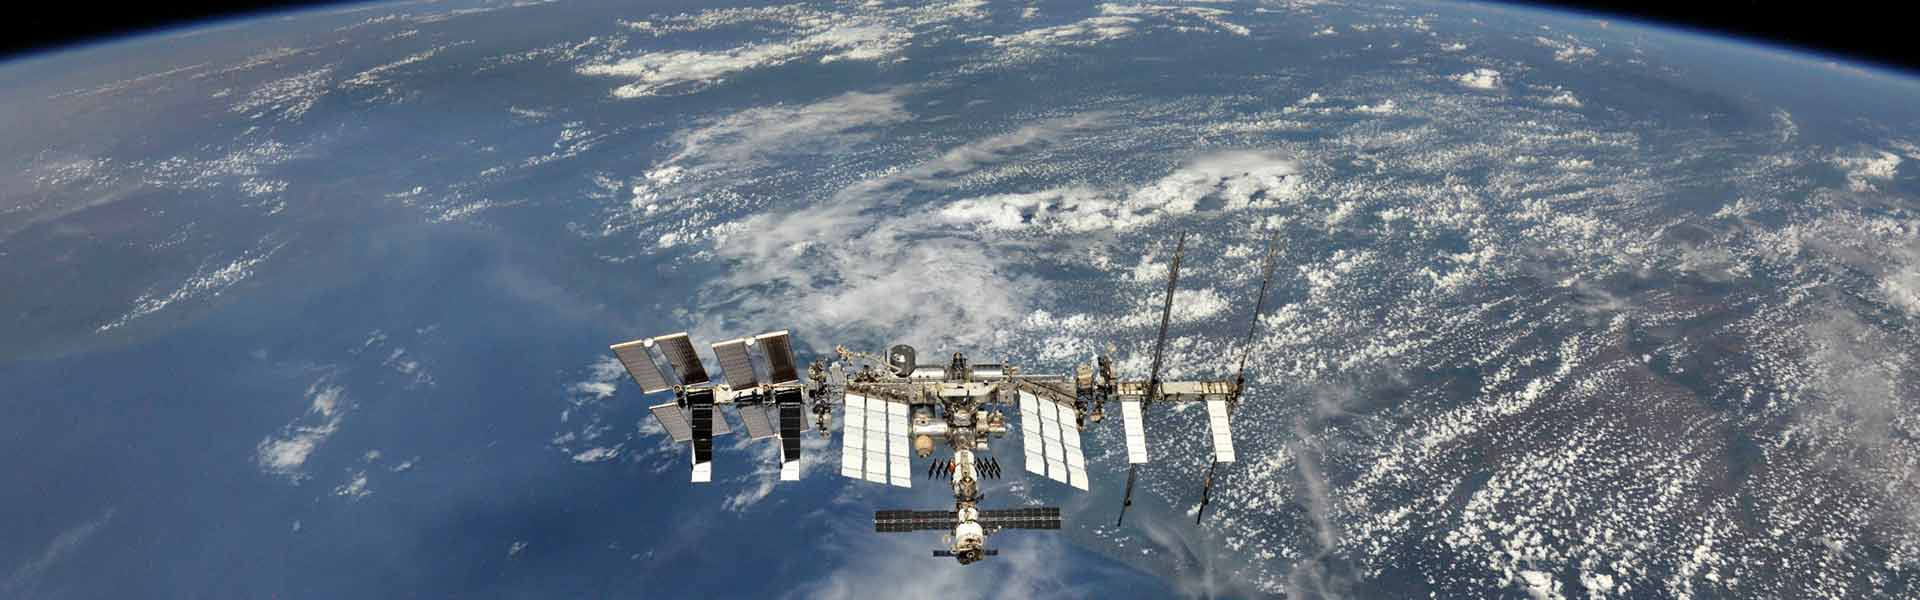 Nasa Invites Tourists to Spend a Month on the International Space Station